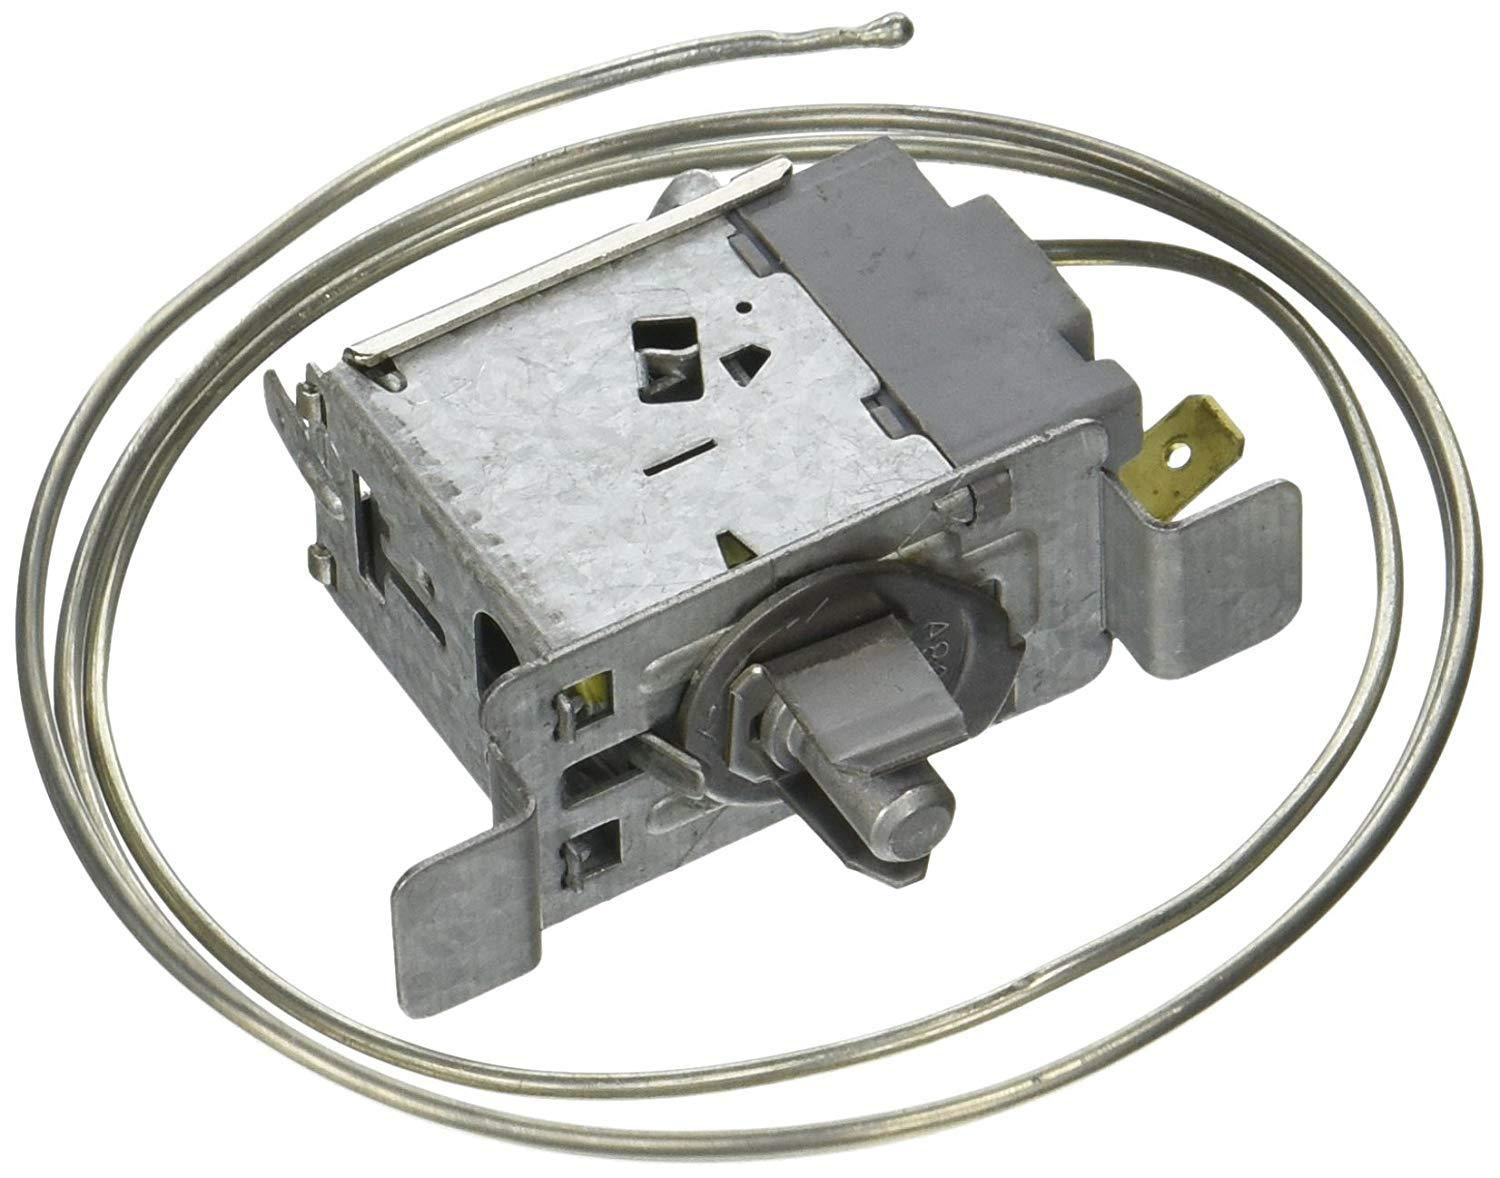 Frigidaire FRT18B4AQ4 Cold Control Thermostat Replacement